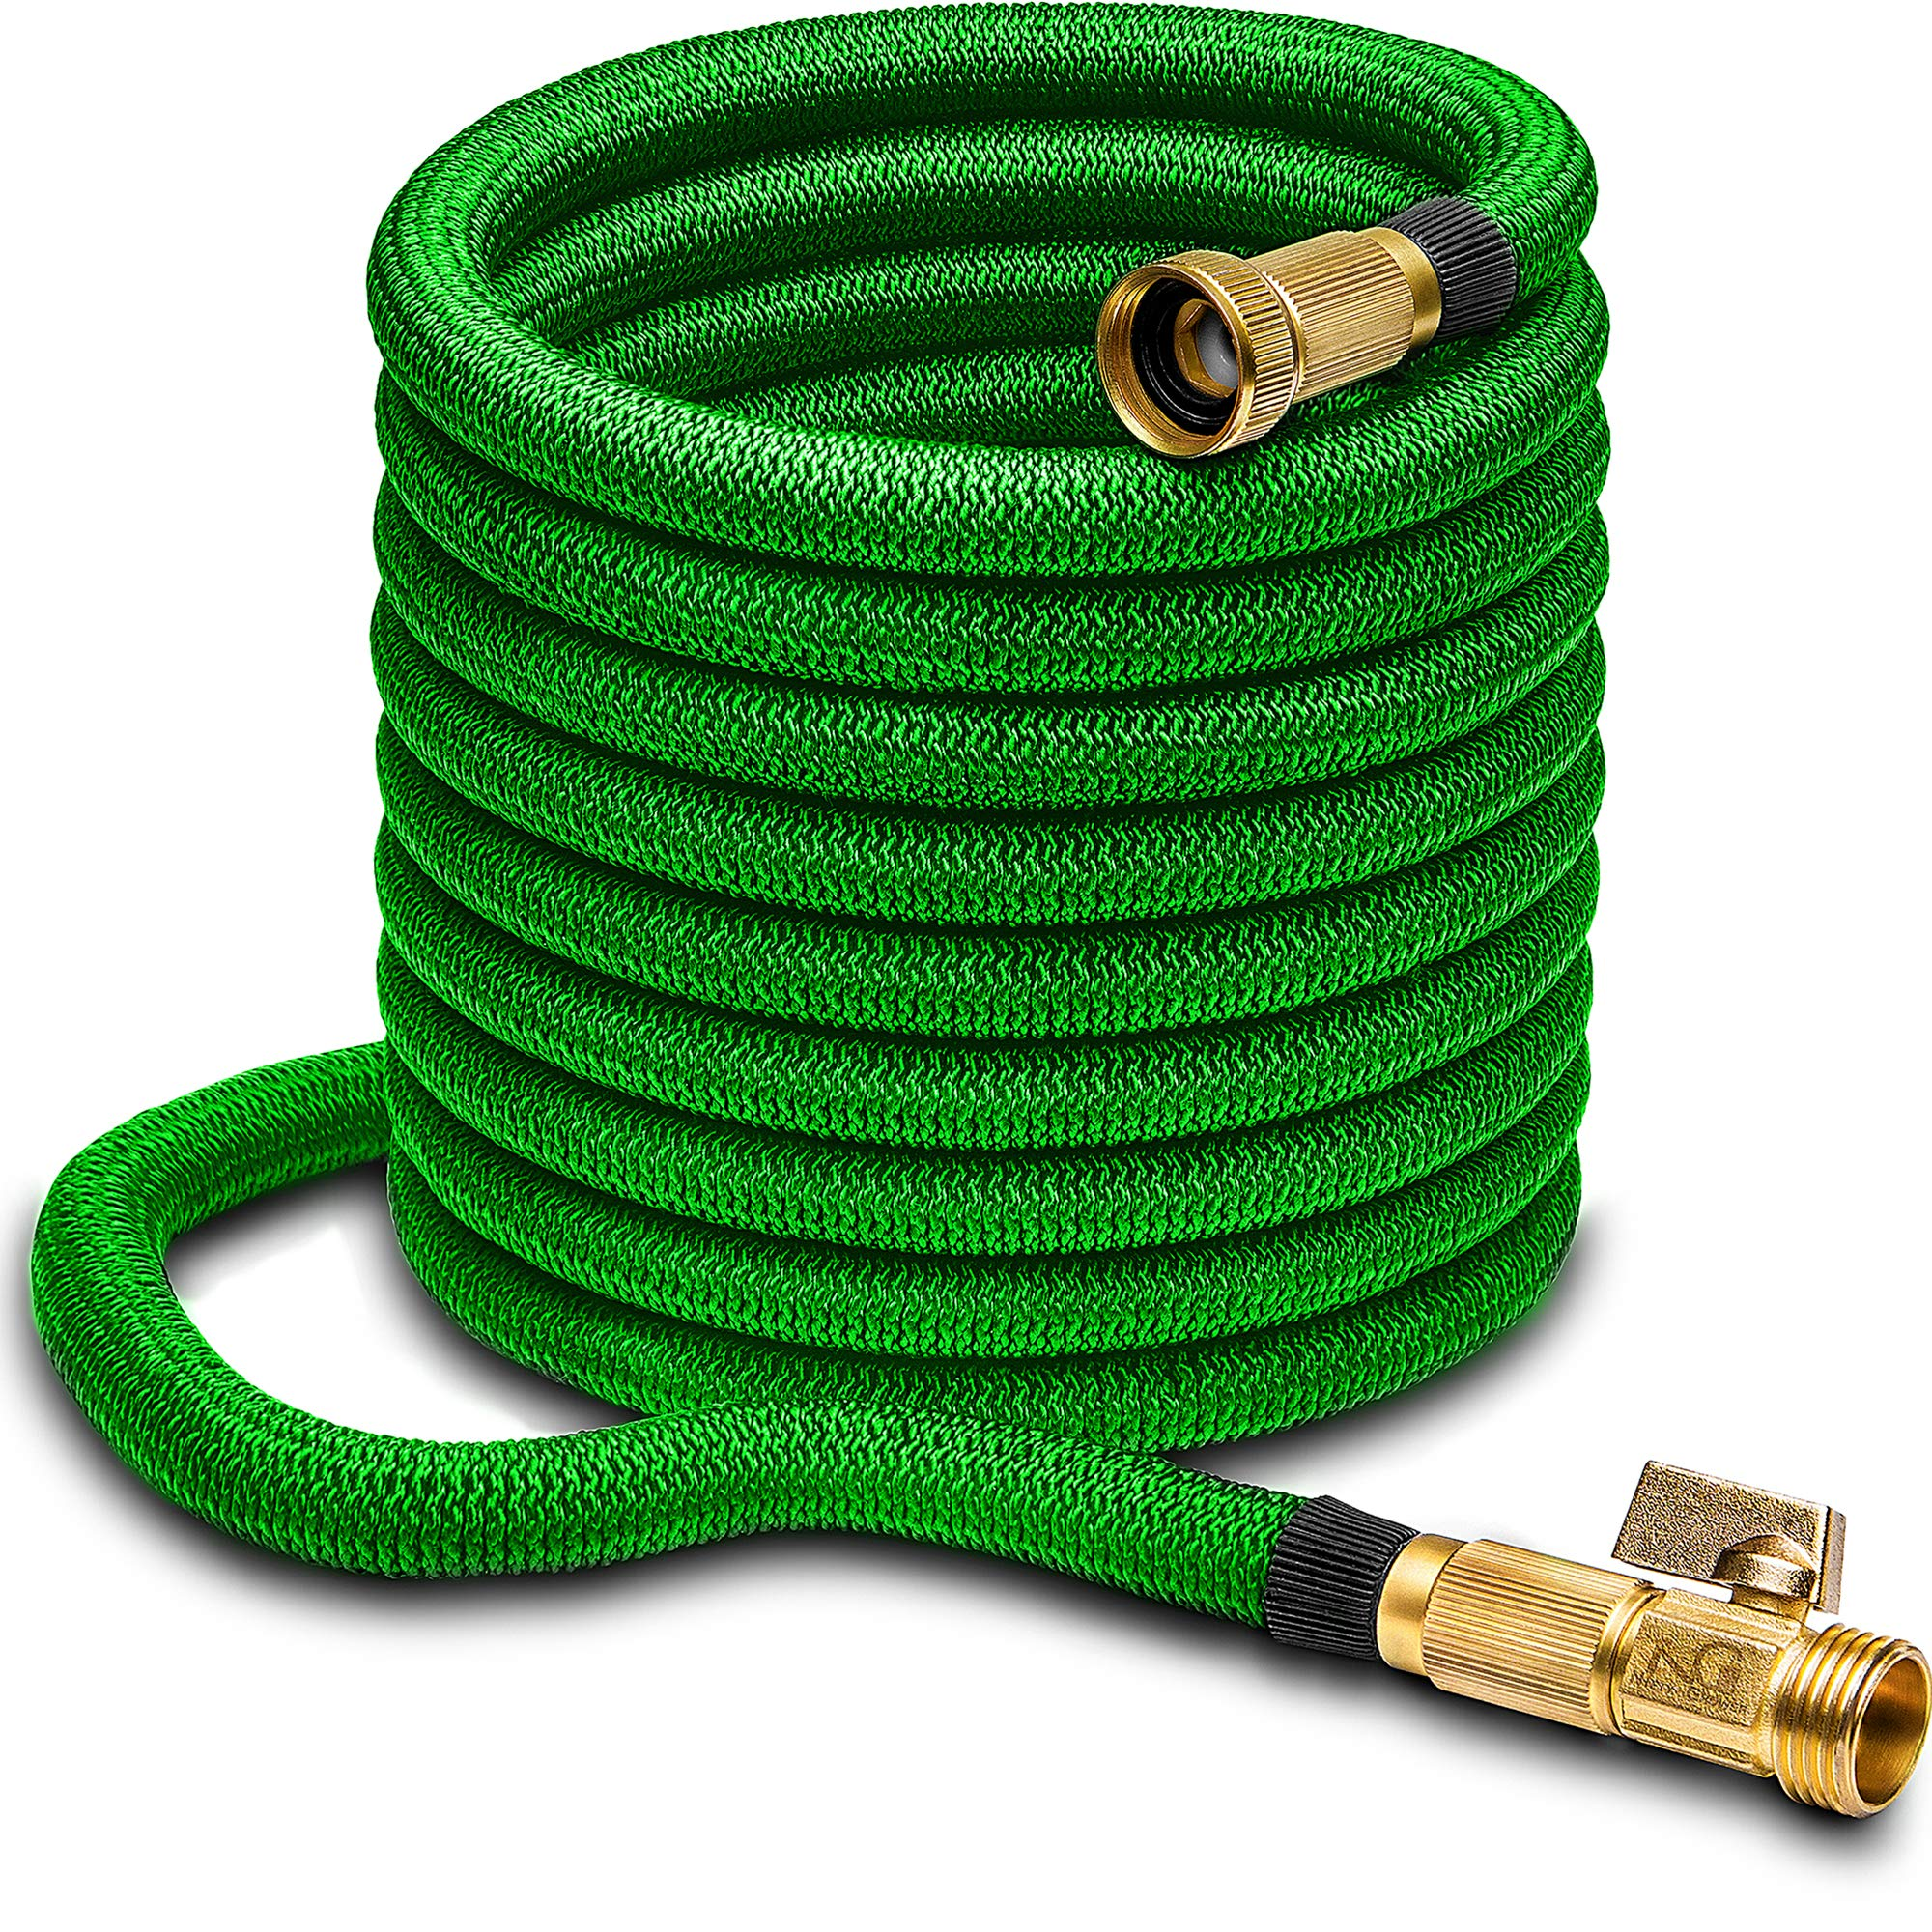 Nifty Grower 100ft Garden Hose - All New Expandable Water Hose with Double Latex Core 3/4'' Solid Brass Fittings Extra Strength Fabric - Flexible Expanding Hose with Storage Bag for Easy Carry